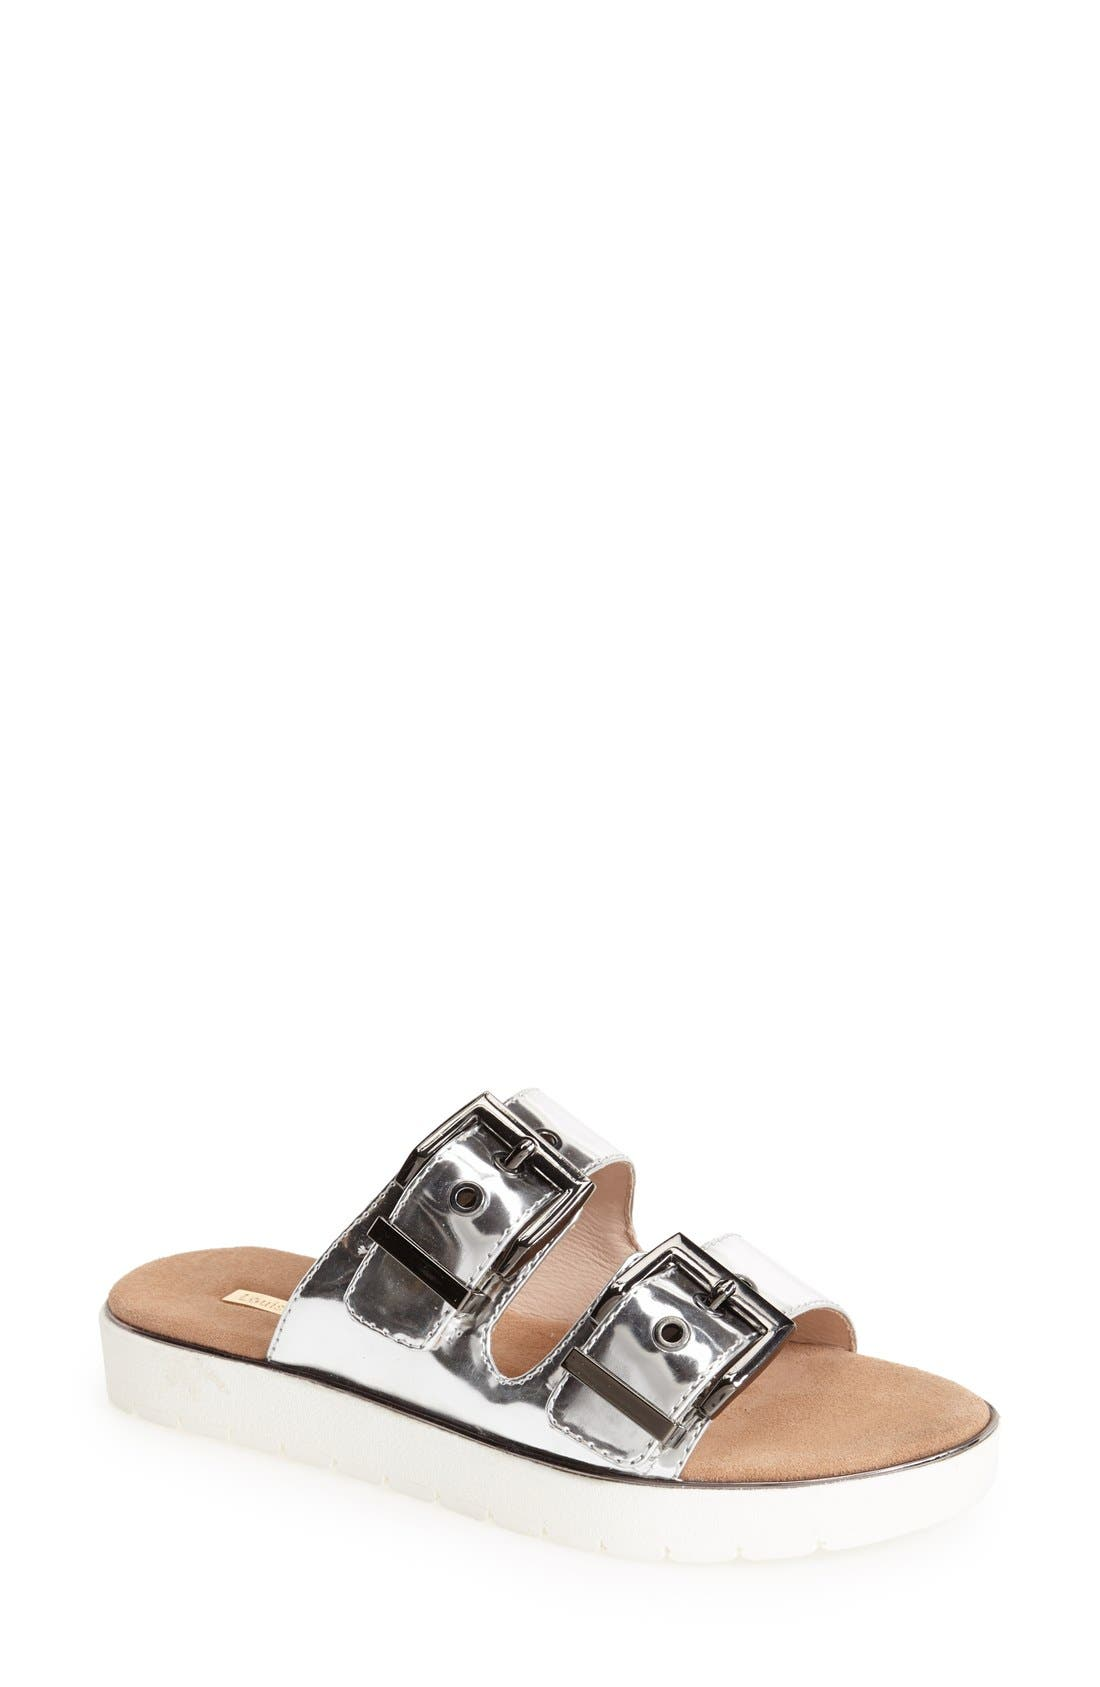 Main Image - Louise et Cie 'Lairde' Slip-On Leather Sandal (Women)